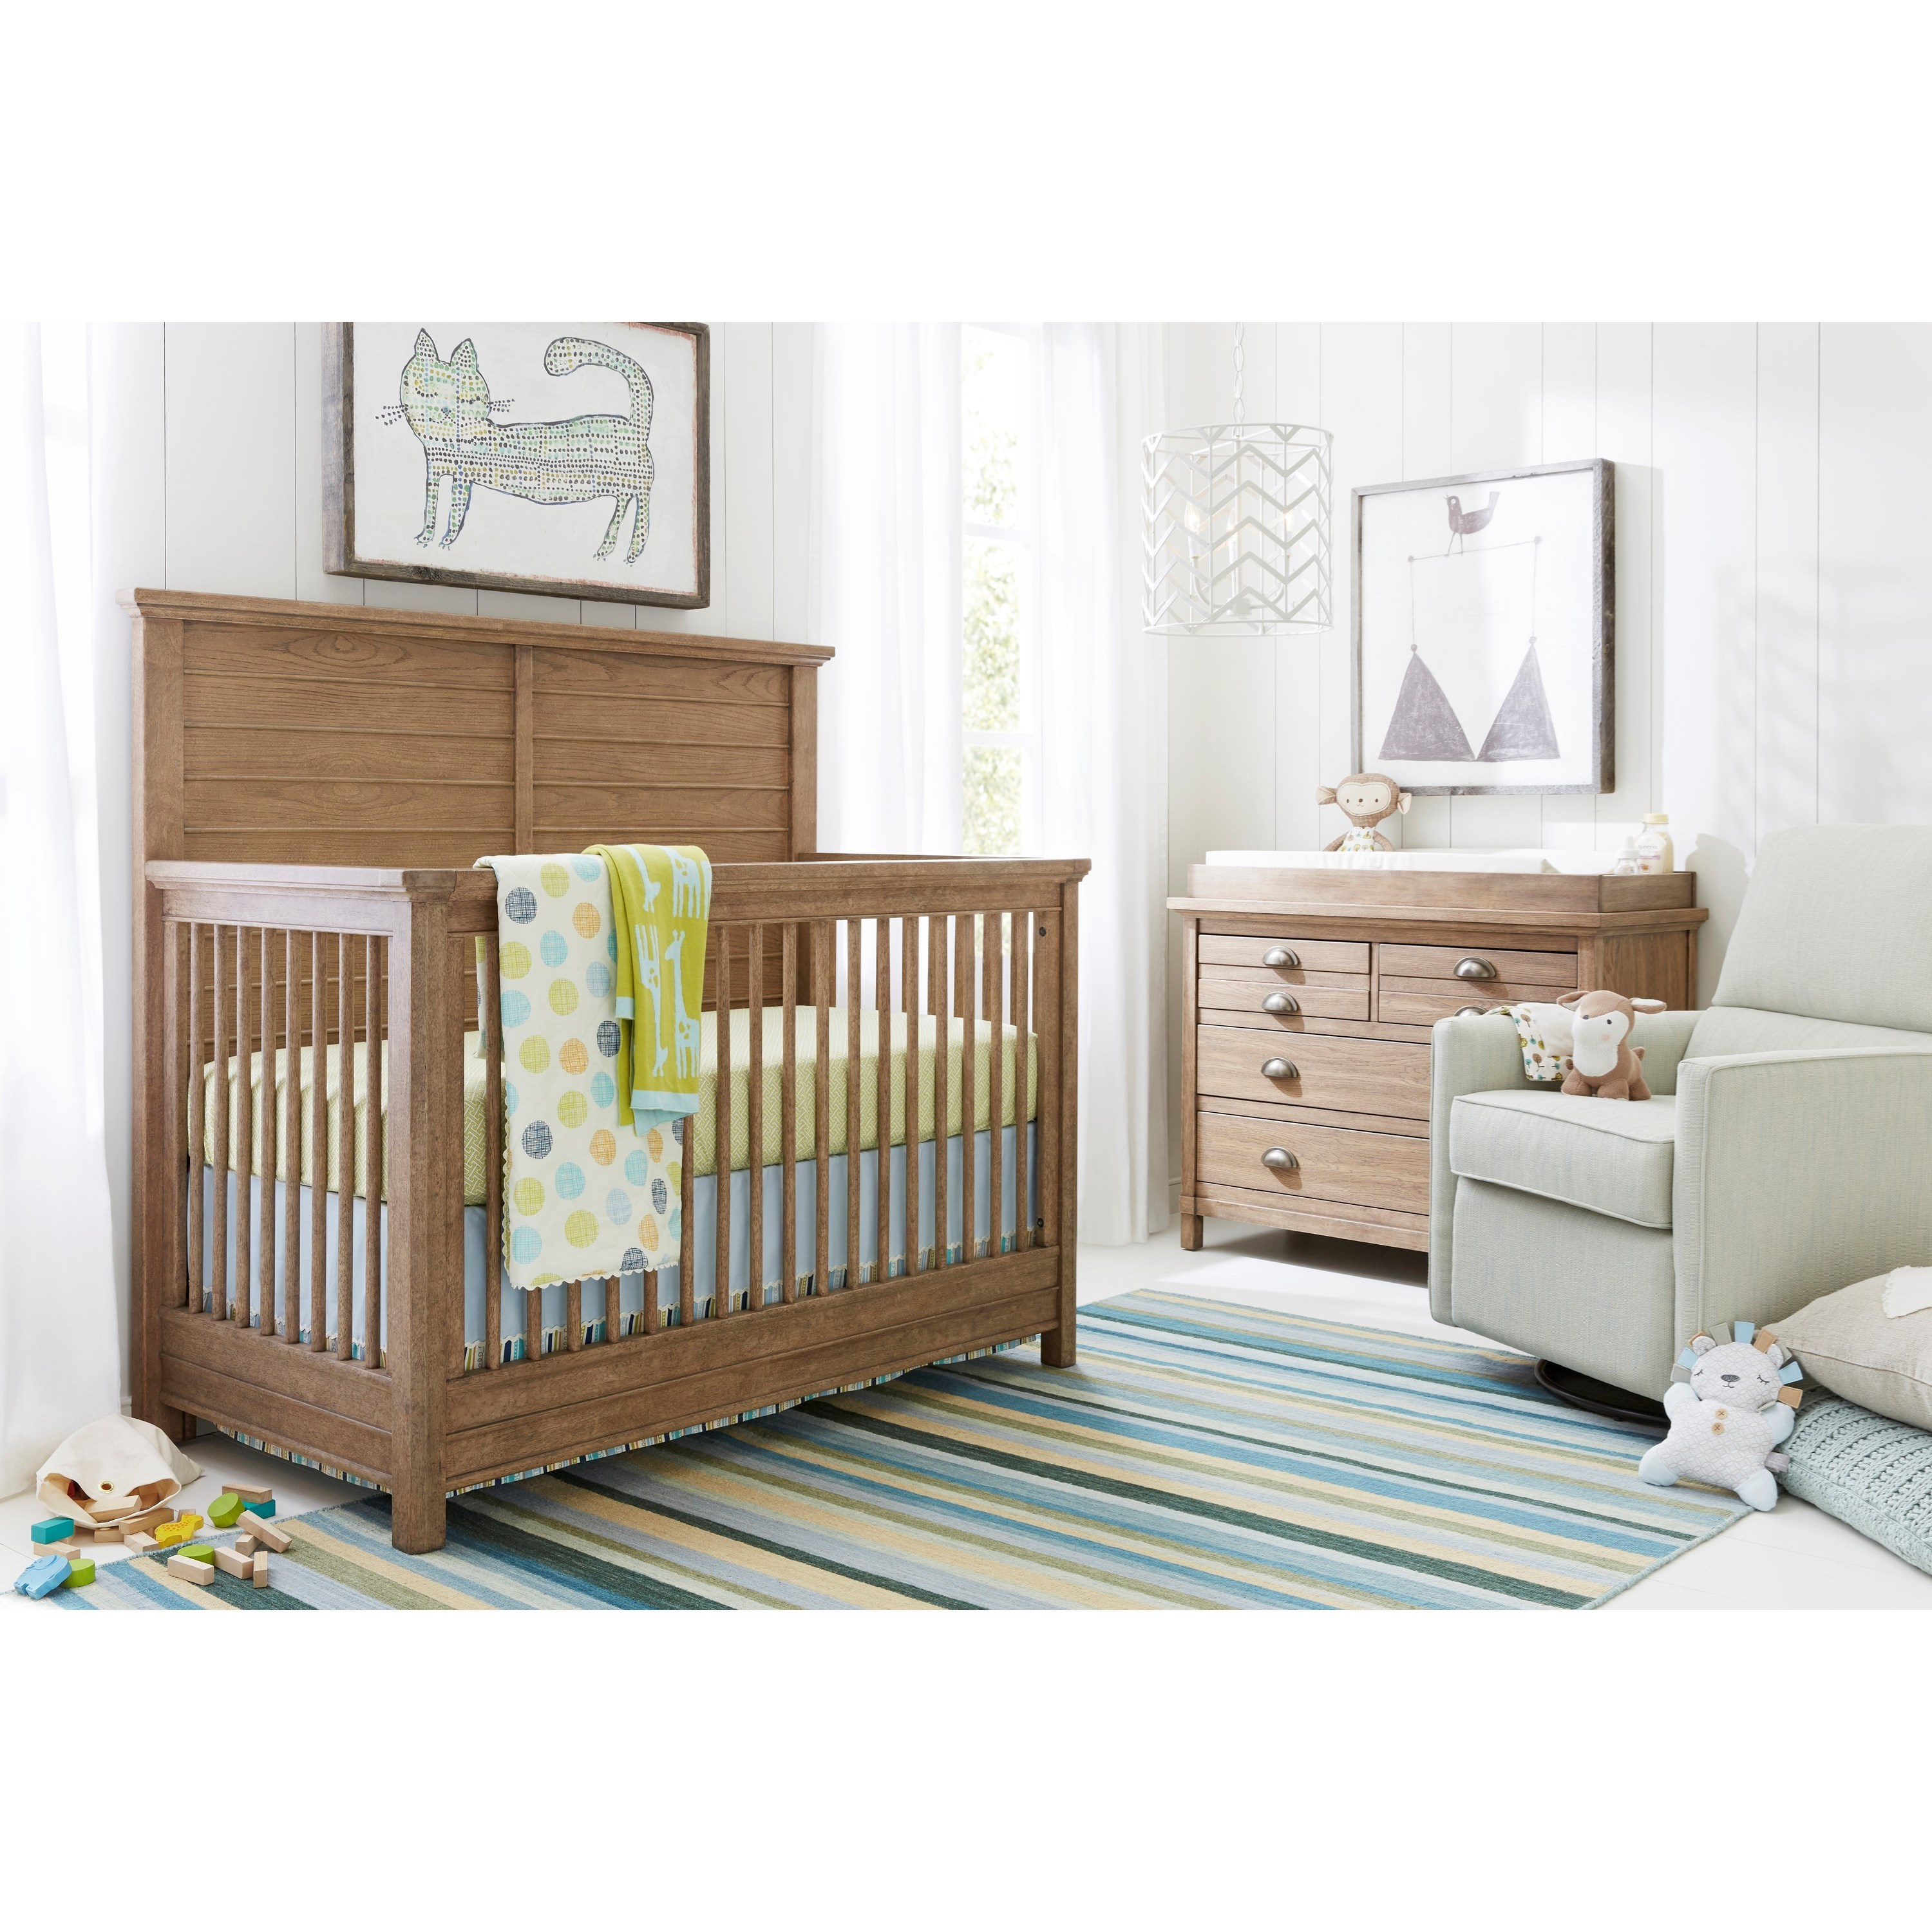 Stone & Leigh Furniture Driftwood Park Crib Bedroom Group - Item Number: 536-13 C Bedroom Group 1